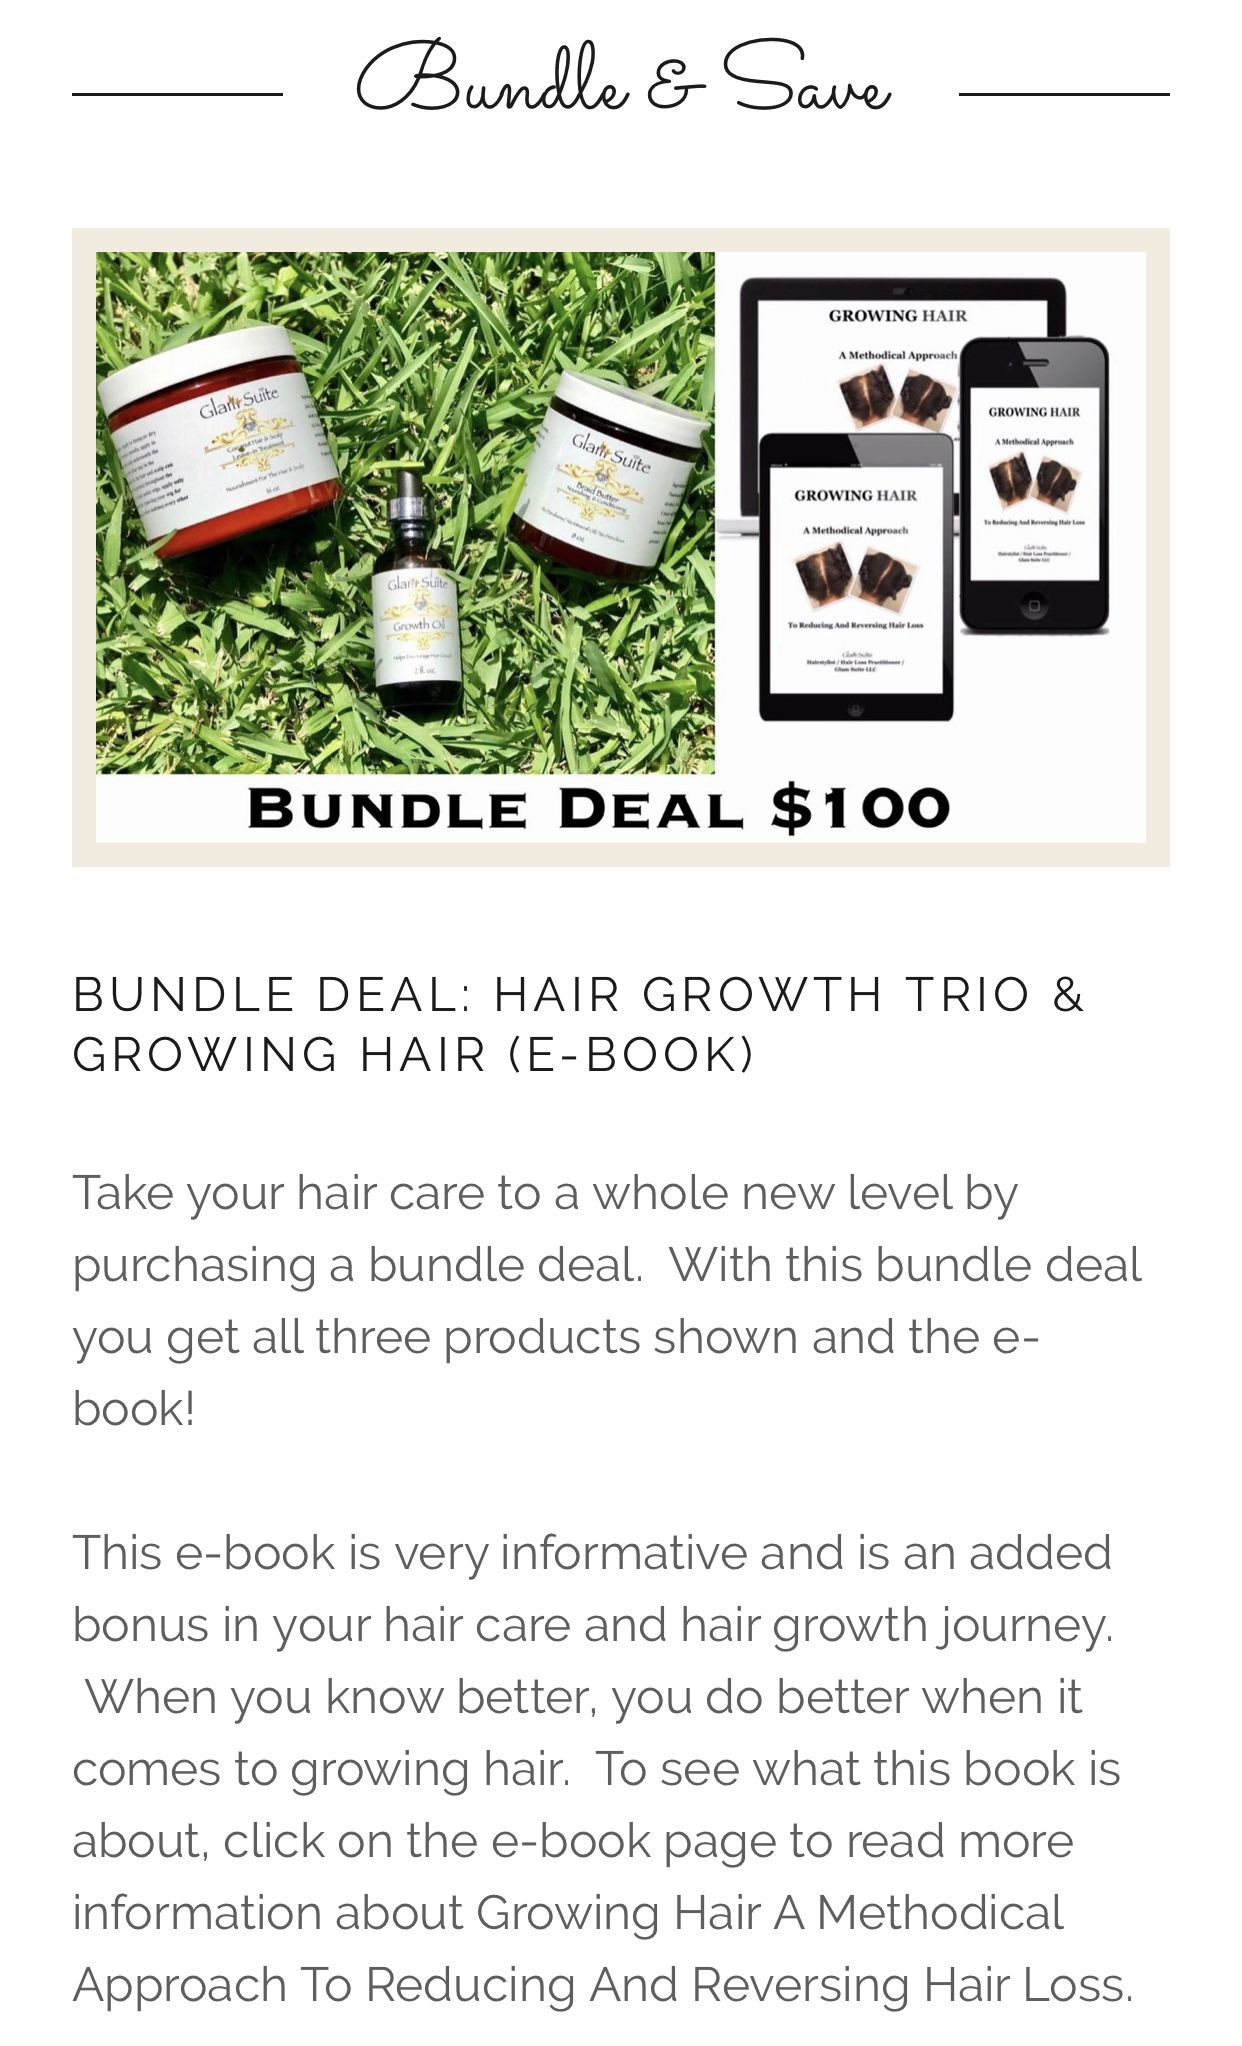 Take your hair growth journey to a whole new level! #haircaretips #4chair #naturalhair #growhairfast #ebook #hairtreatment #hairgrowthoil #growthoil #hairbutter #healthyhairjourney